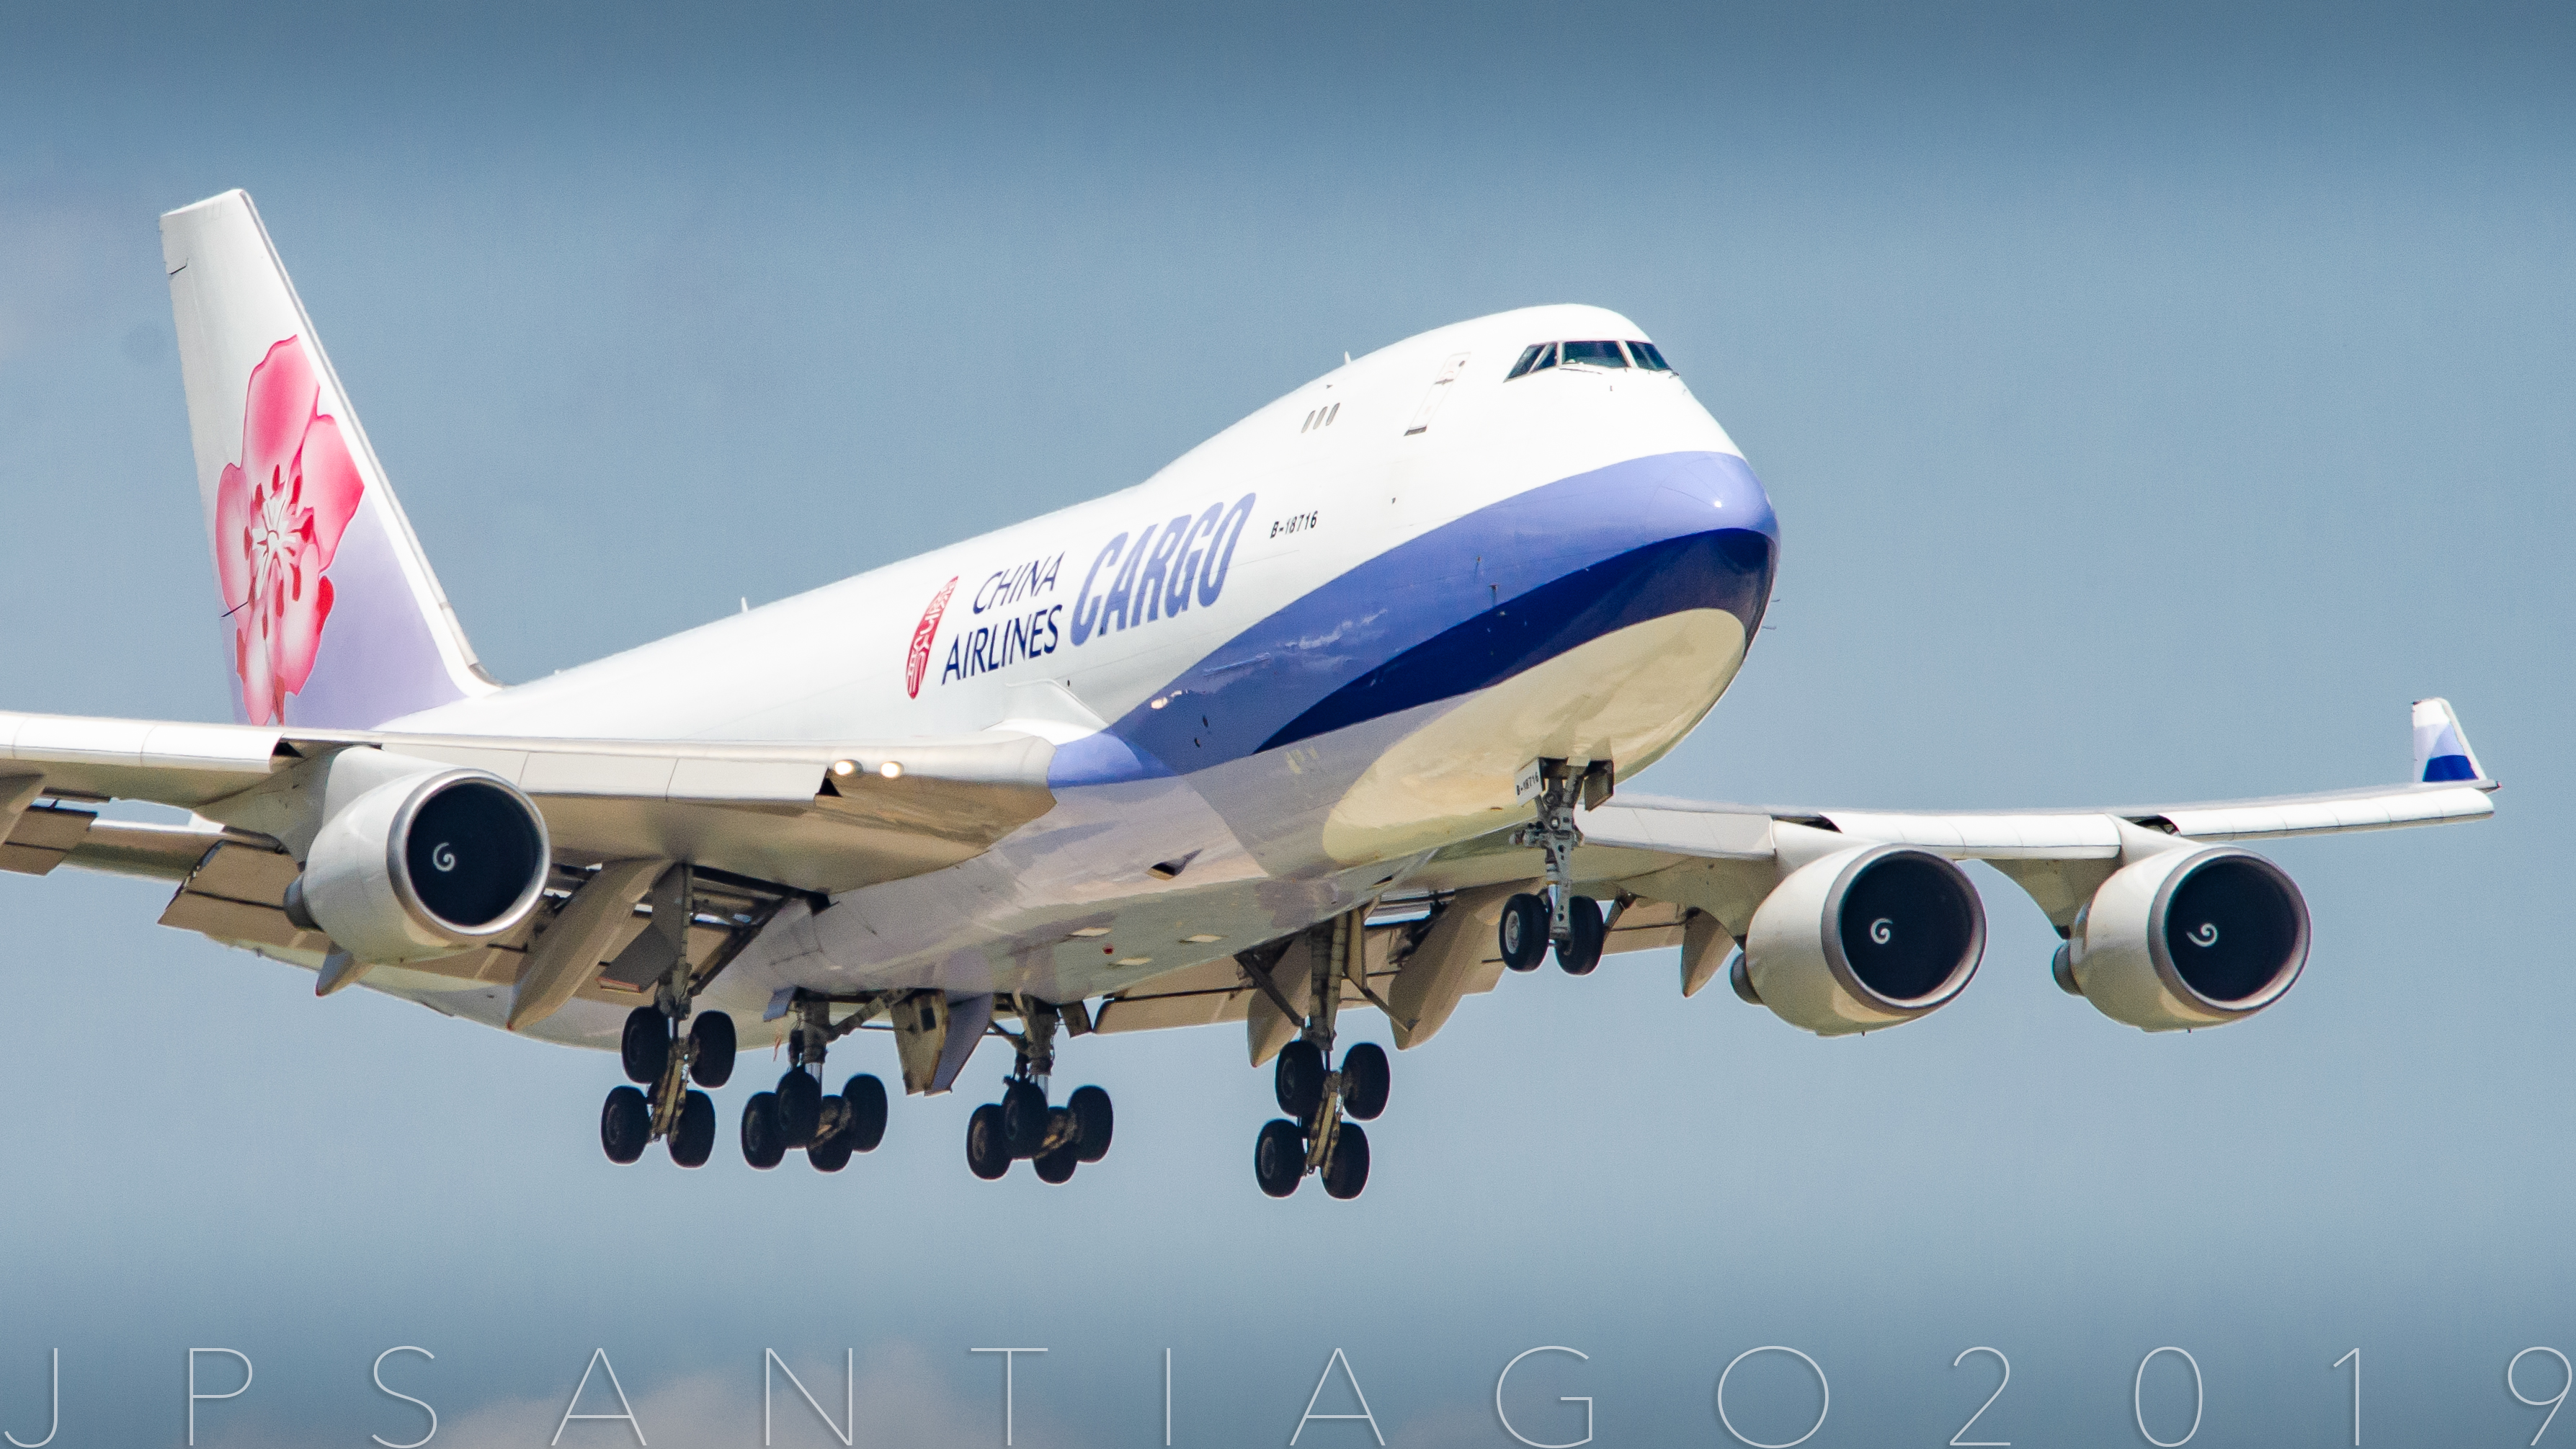 China Airlines Cargo 747-400F